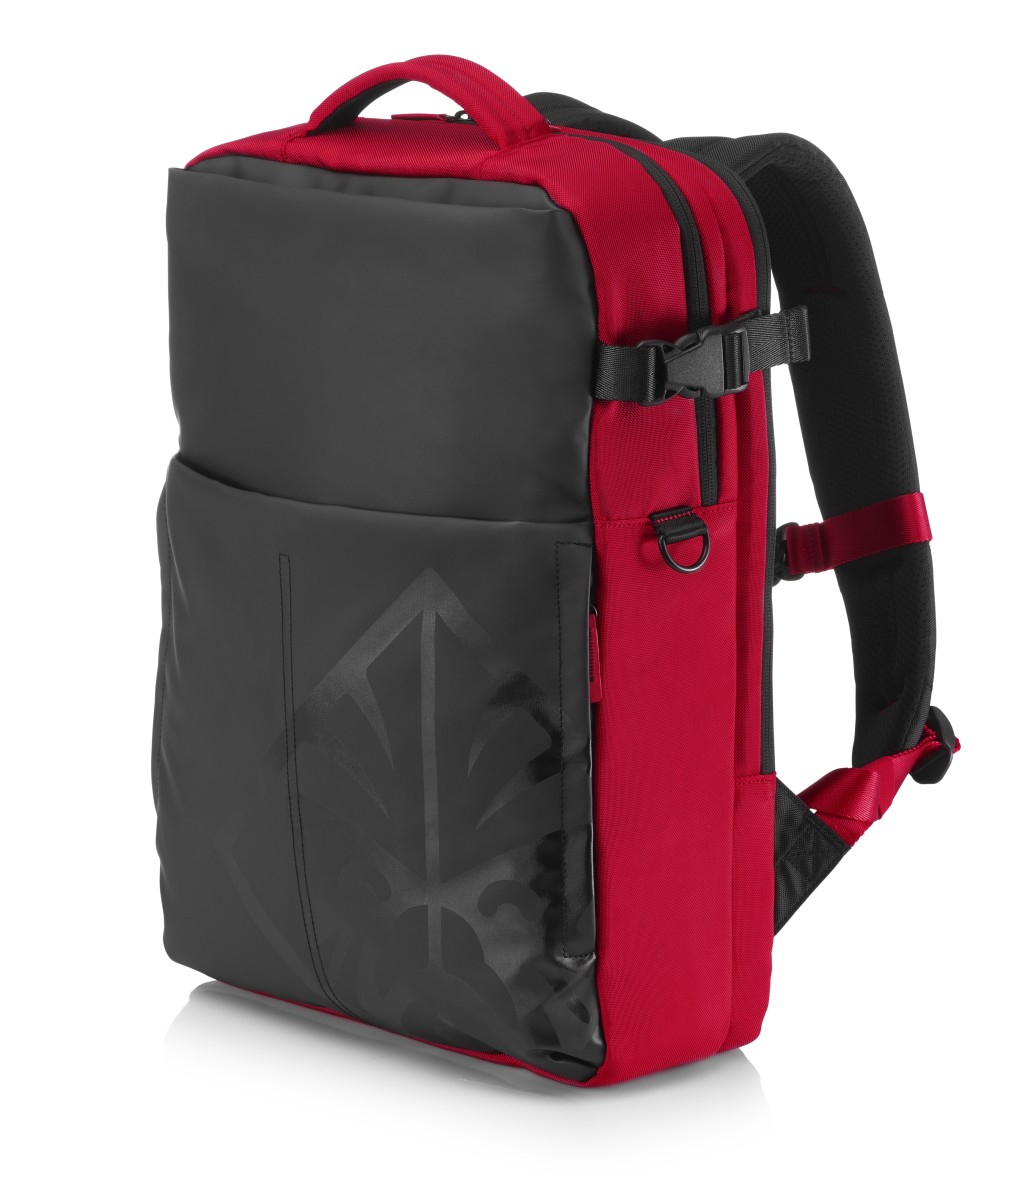 HP OMEN 17.3 Inch Black/Red Gaming Backpack